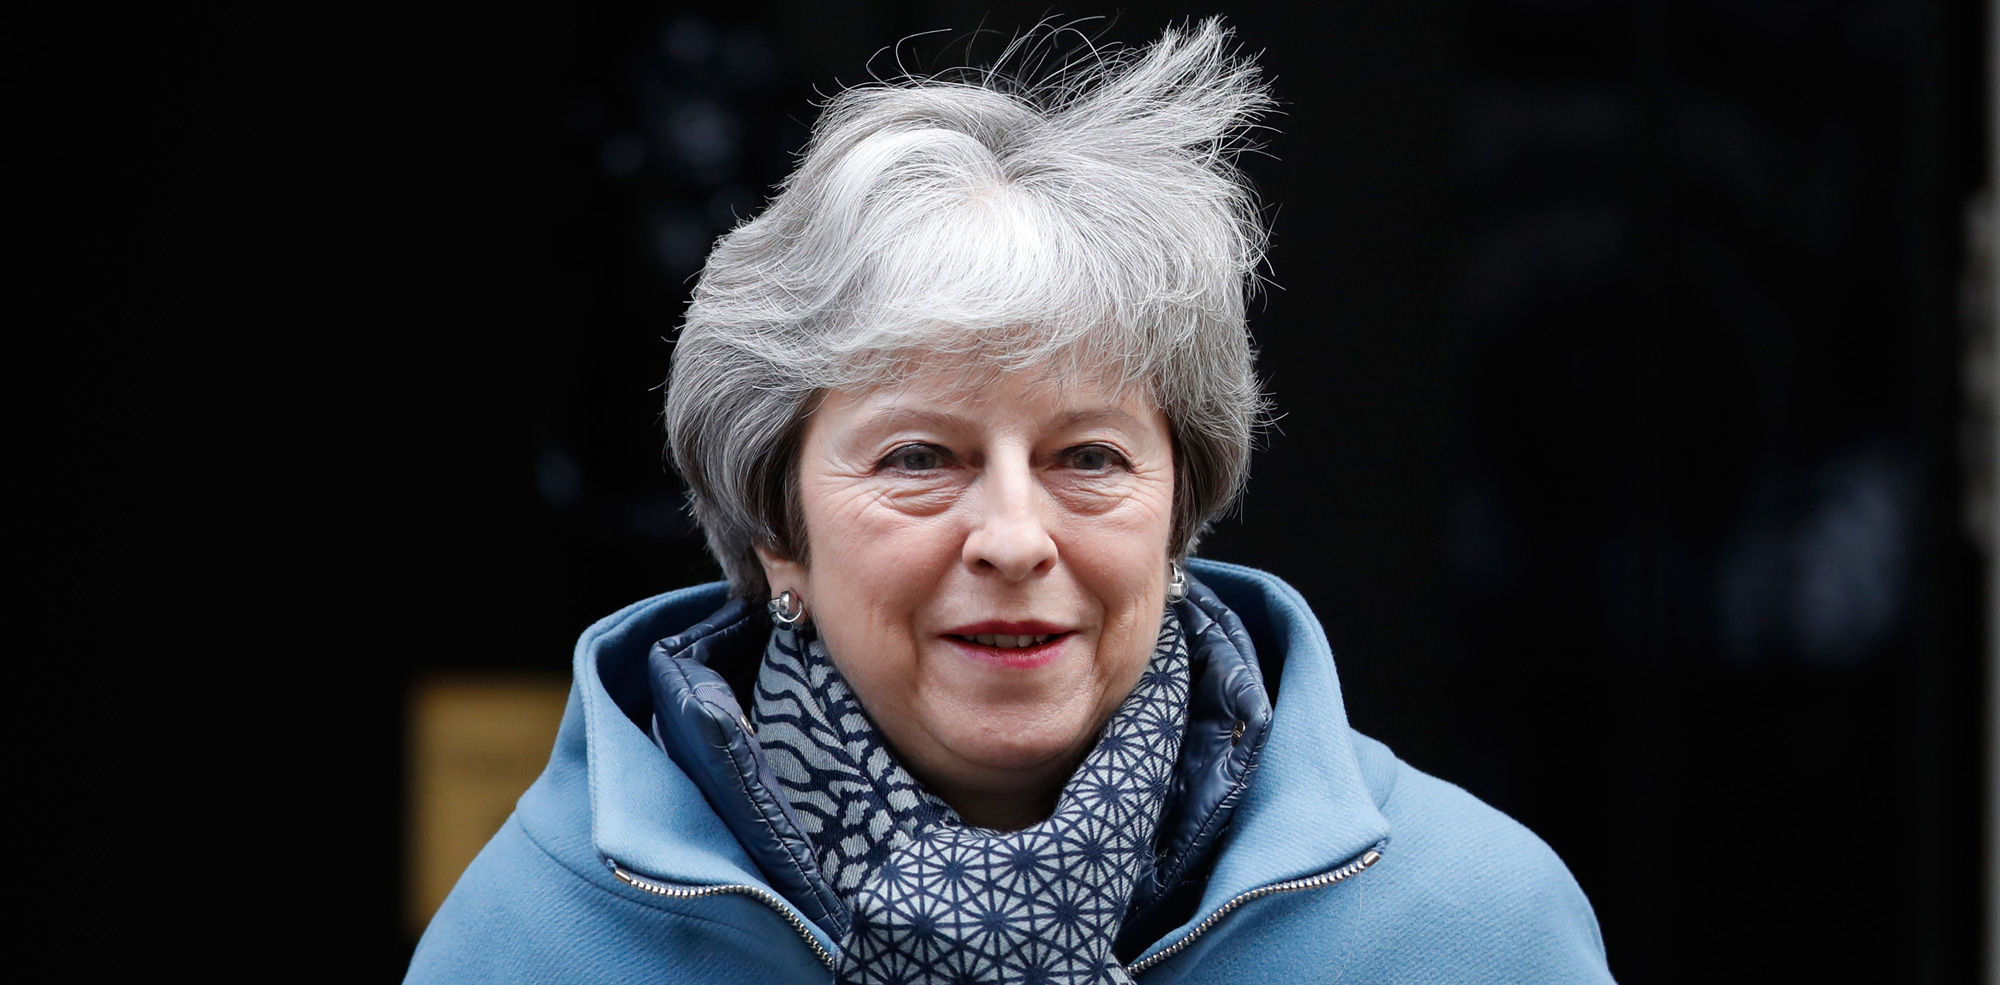 Britain's Prime Minister Theresa May leaves 10 Downing Street for the House of Commons for her weekly Prime Minister's Questions in London on Wednesday, January 23.